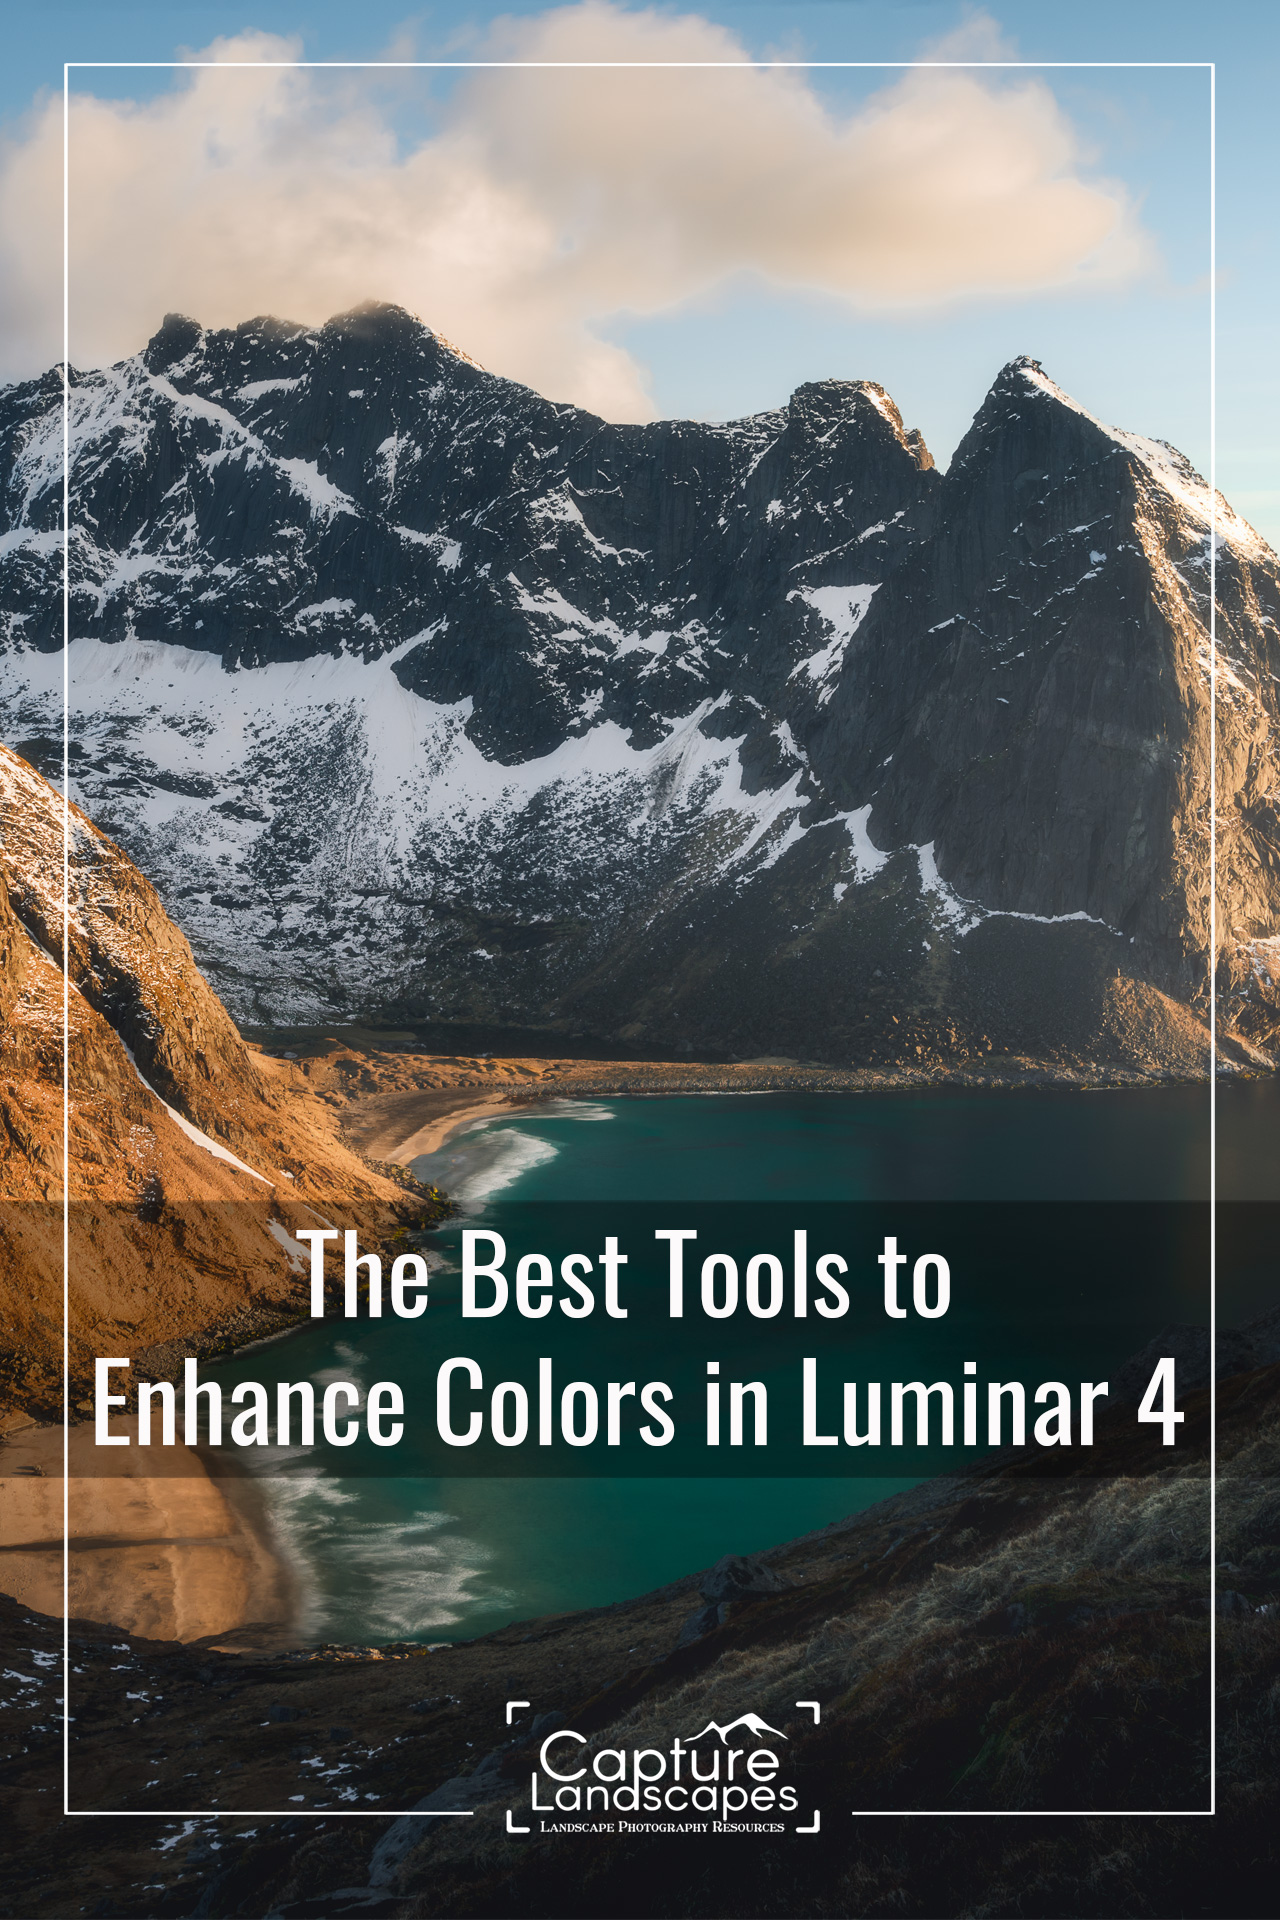 Enhance colors in Luminar 4 Pinterest